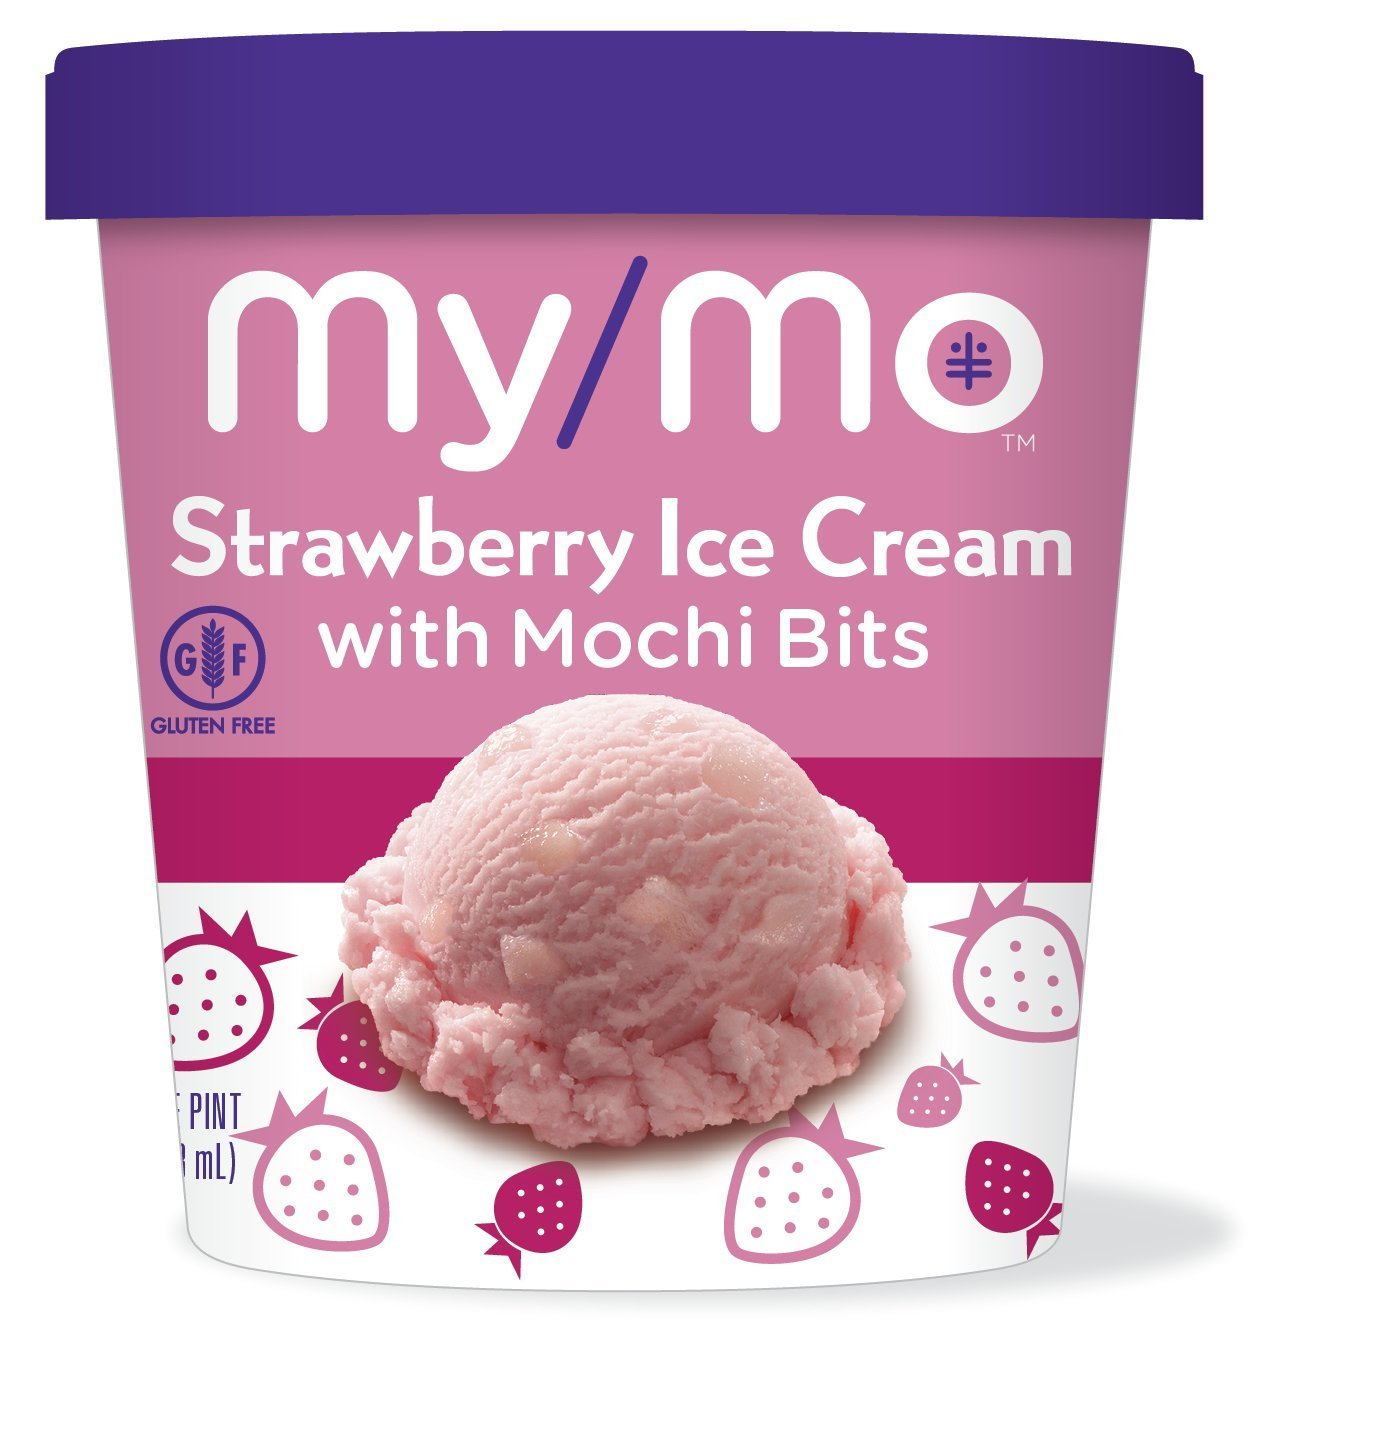 My/Mo Strawberry Ice Cream with Mochi Bits (8 pints) by My/Mo Mochi Ice Cream